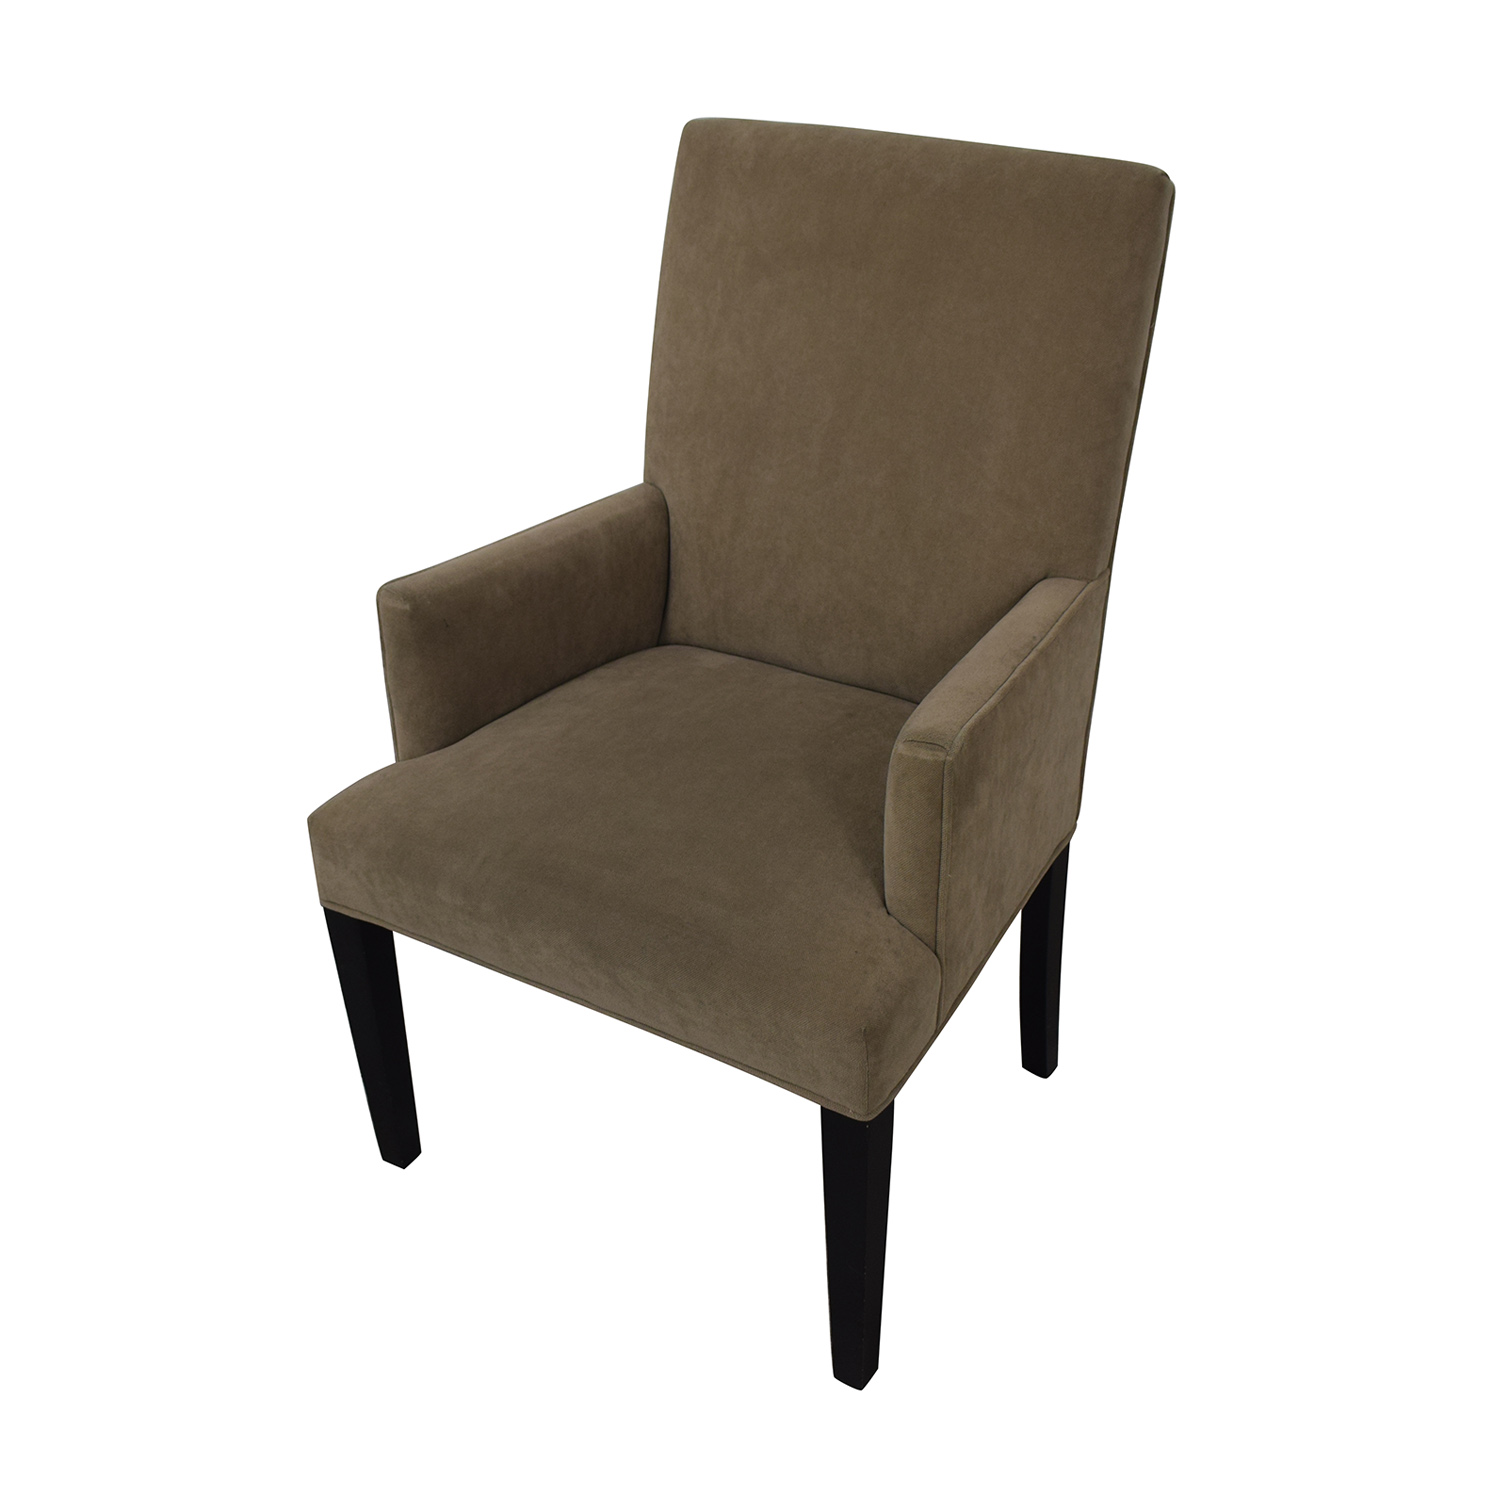 Crate & Barrel Crate & Barrel Tan Dining Chairs Chairs